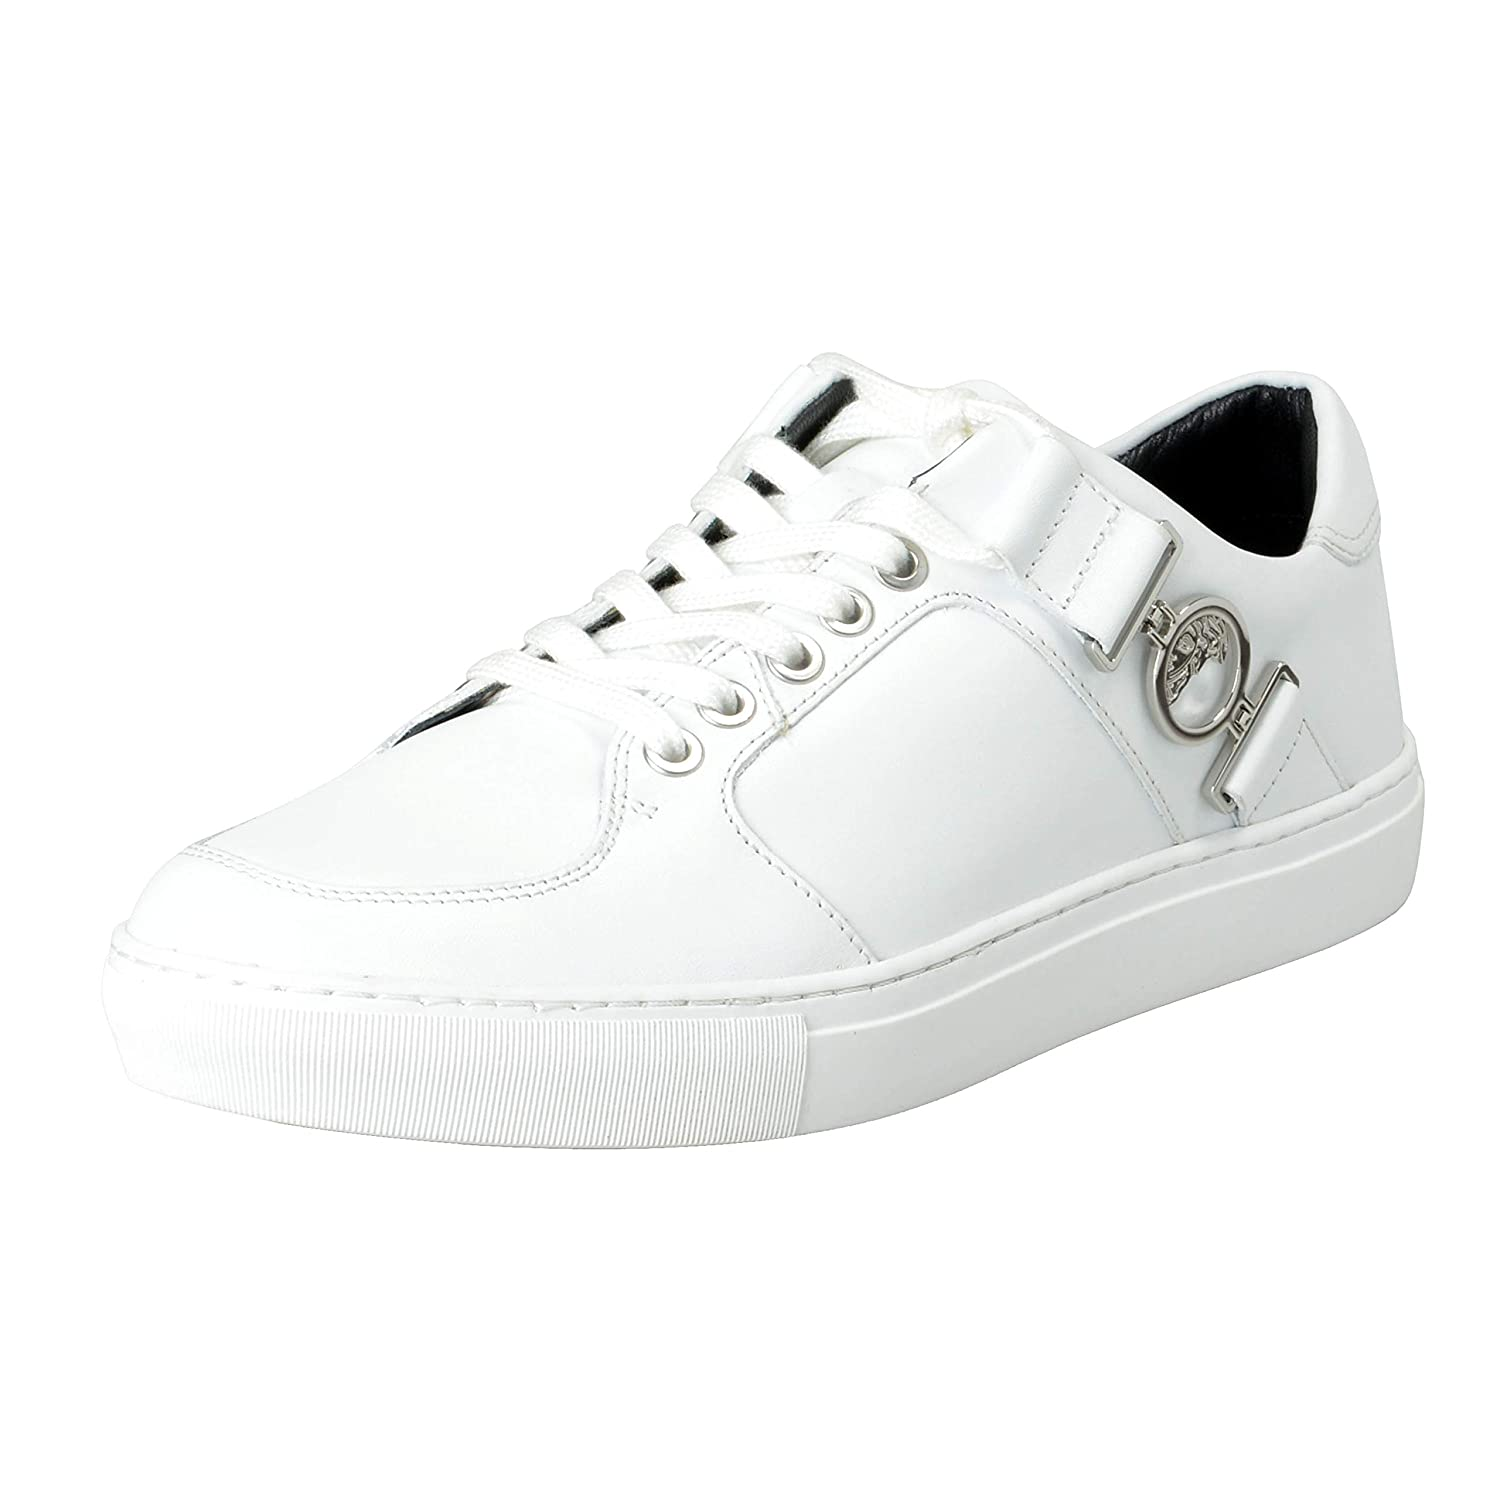 3948a2ad8e7 Amazon.com: Versace Collection Men's White Leather Fashion Sneakers Shoes  Sz US 7 IT 40: Shoes